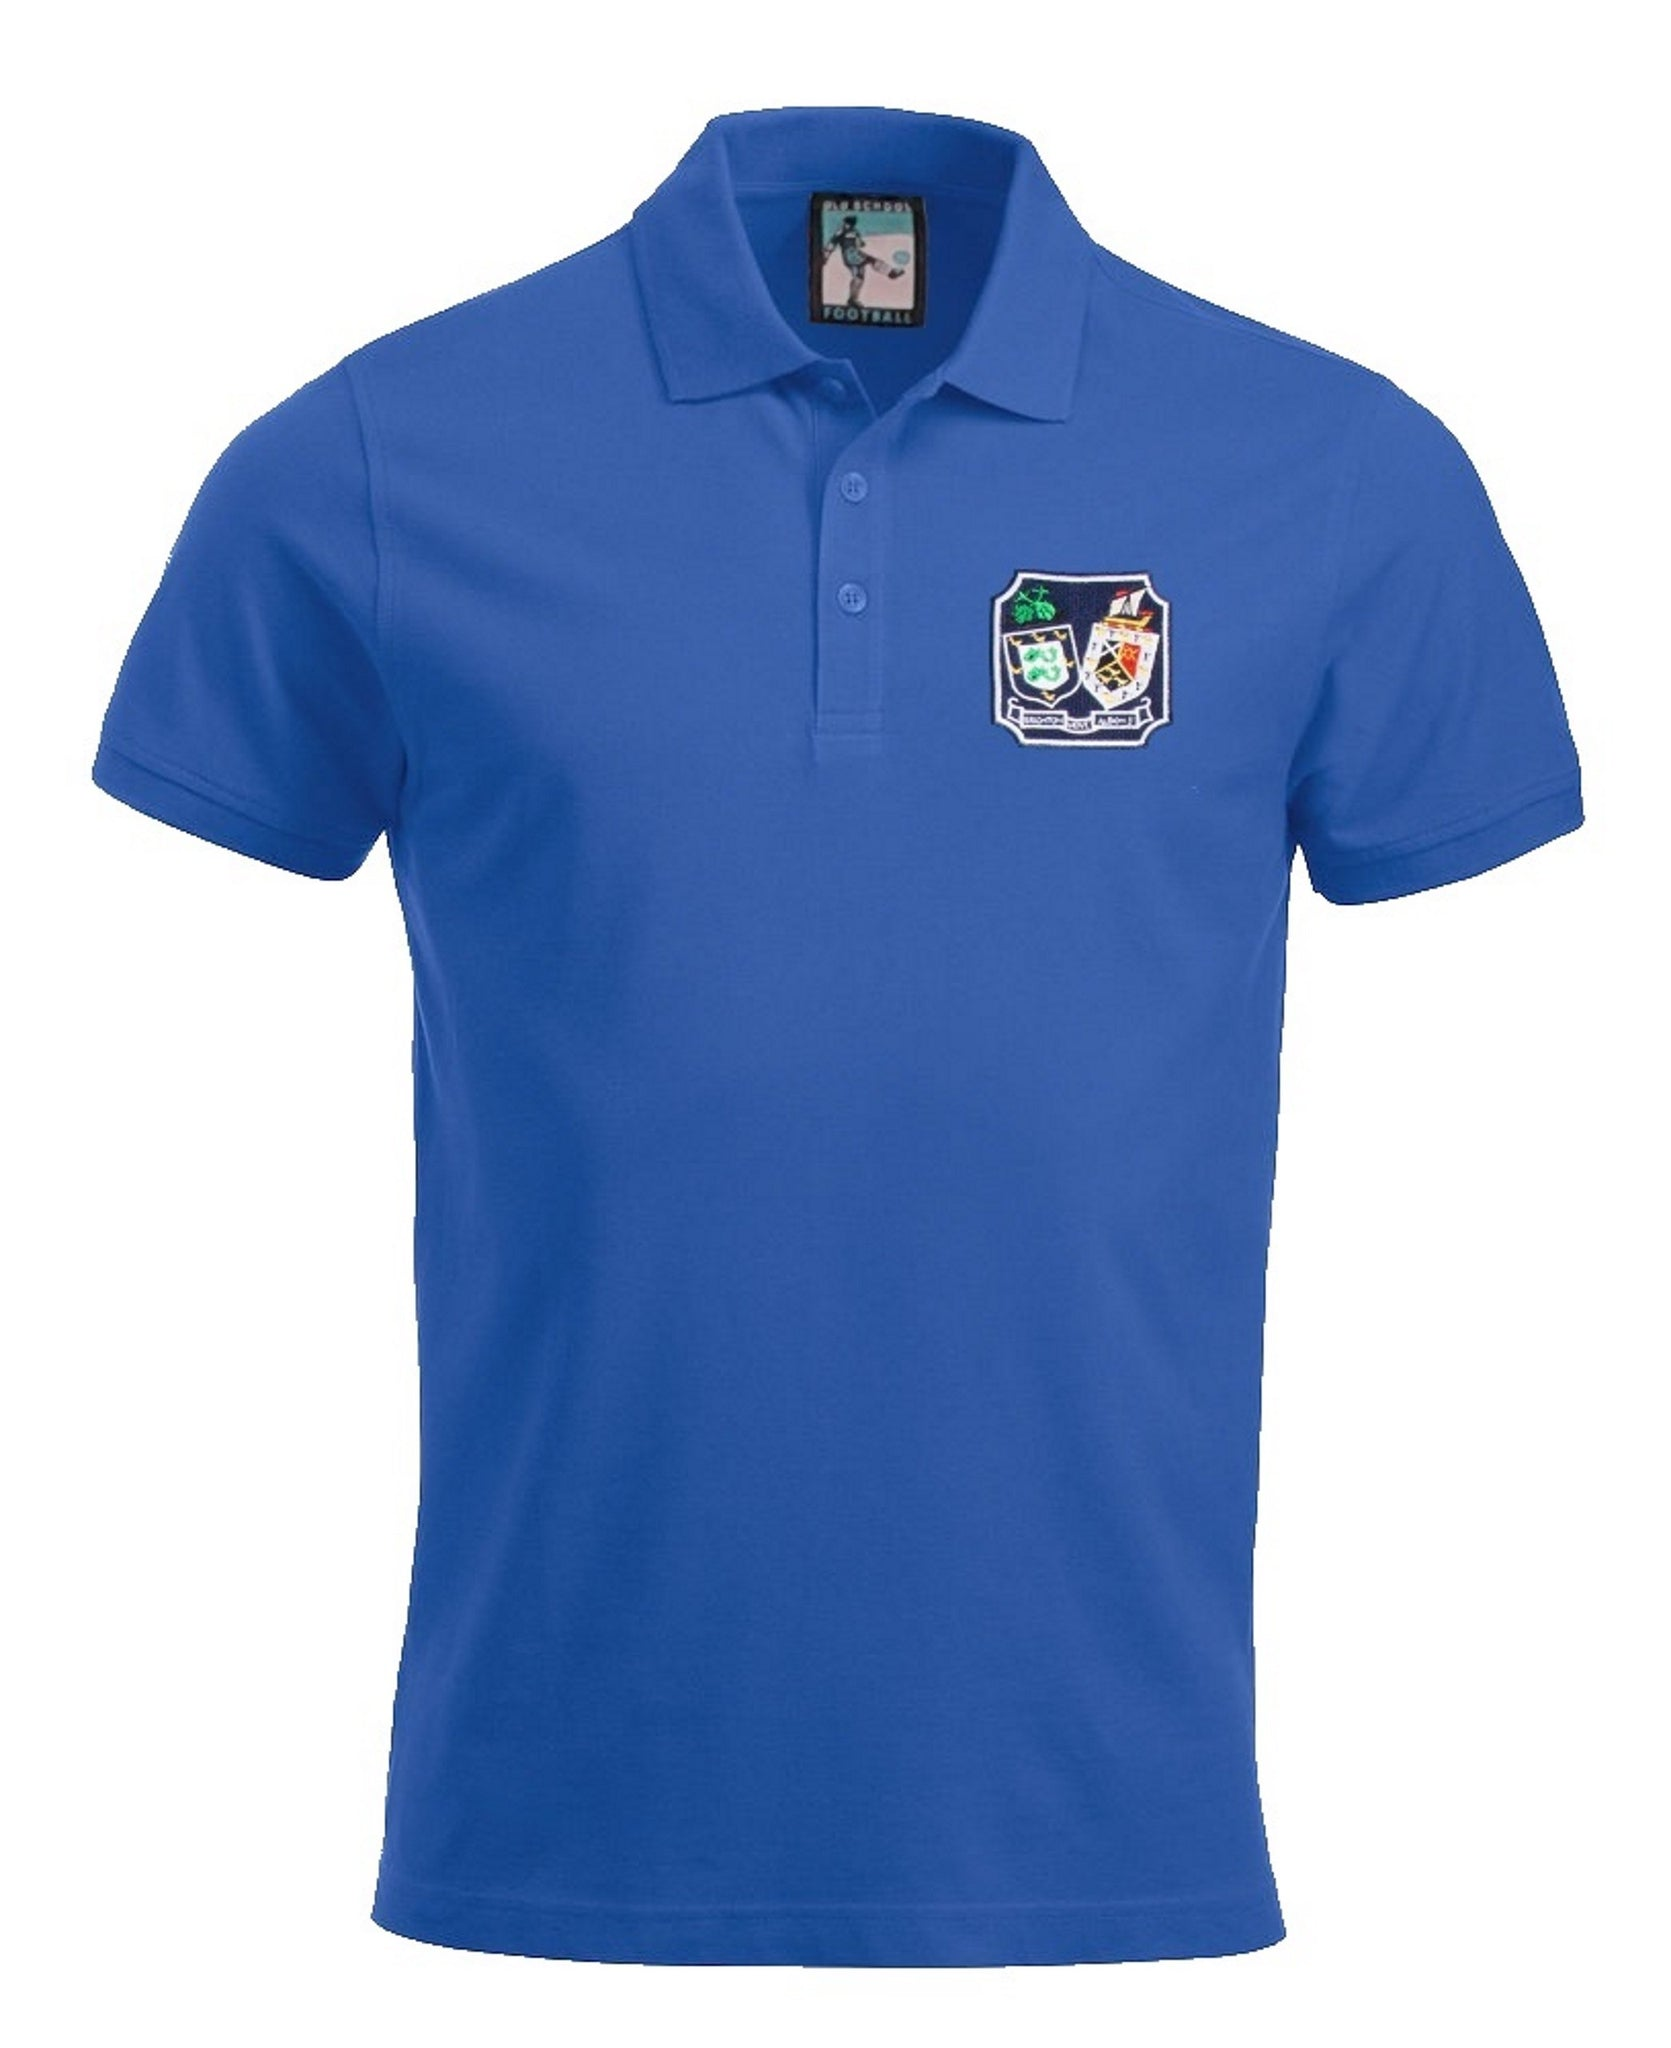 Brighton & Hove Albion Retro 1960s Football Polo Shirt - Polo